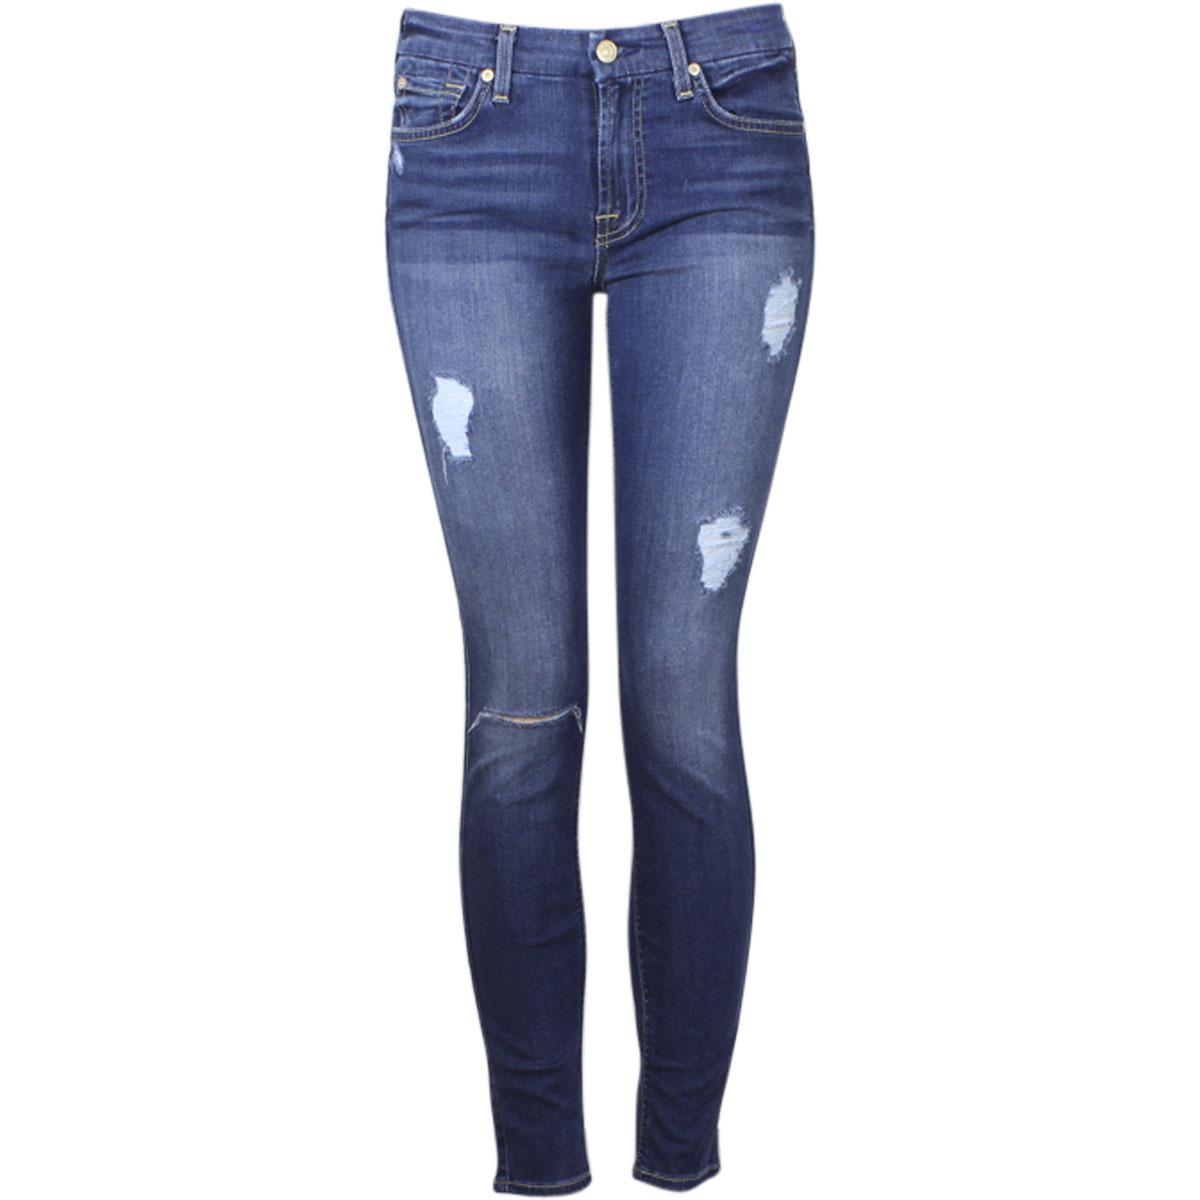 Image of 7 For All Mankind Women's The Ankle Skinny With Destroy (B)Air Denim Jeans - Blue - 27 (3/4)